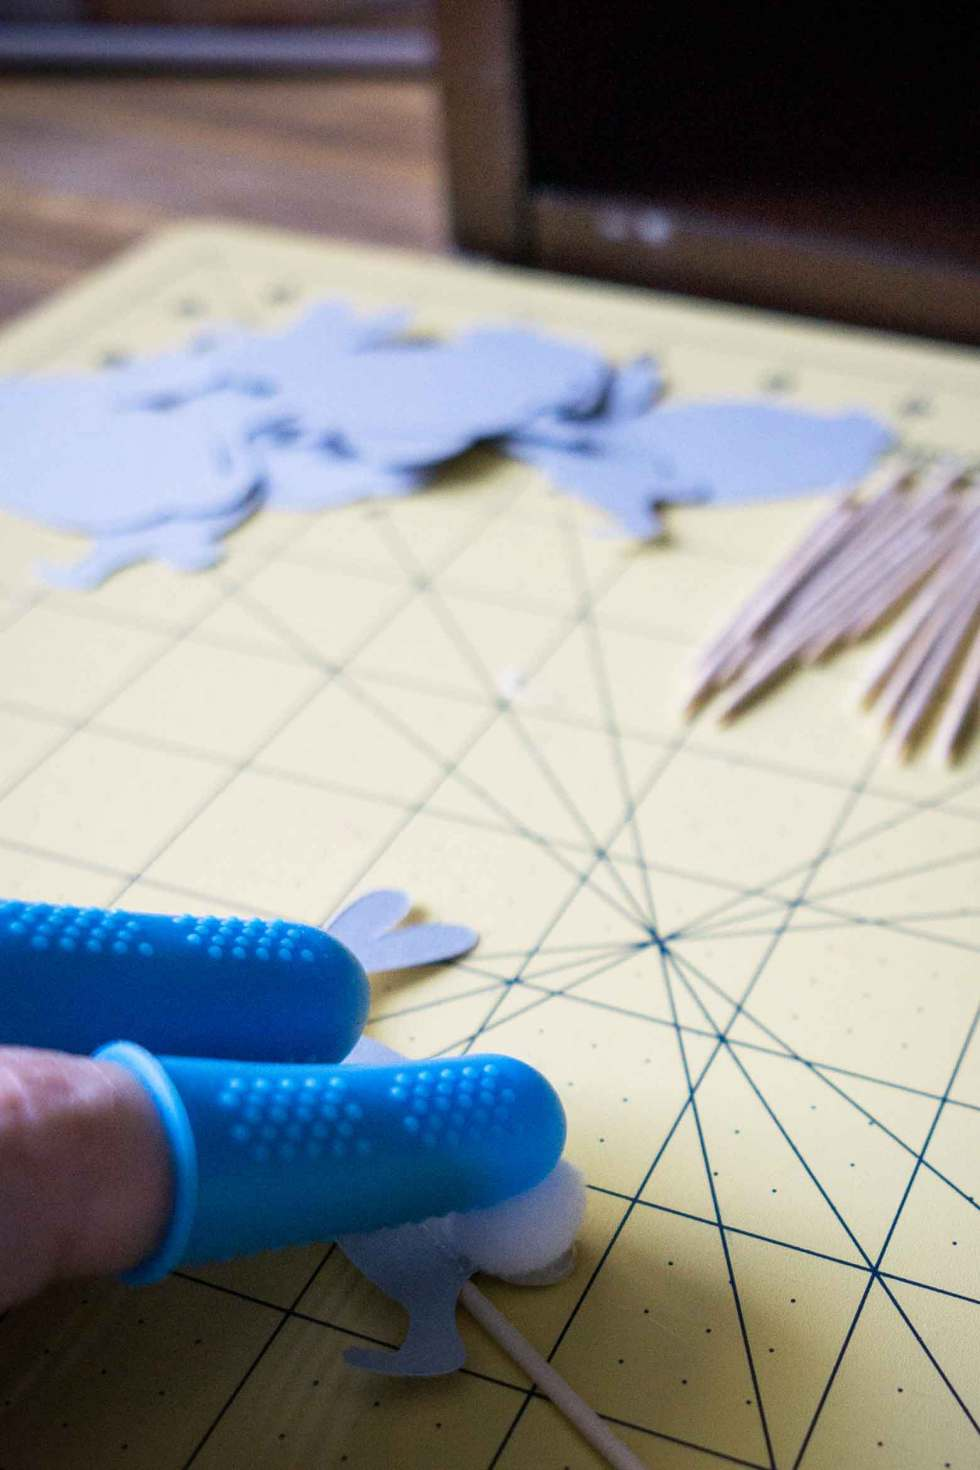 protect your fingers from hot glue with this clever gadget